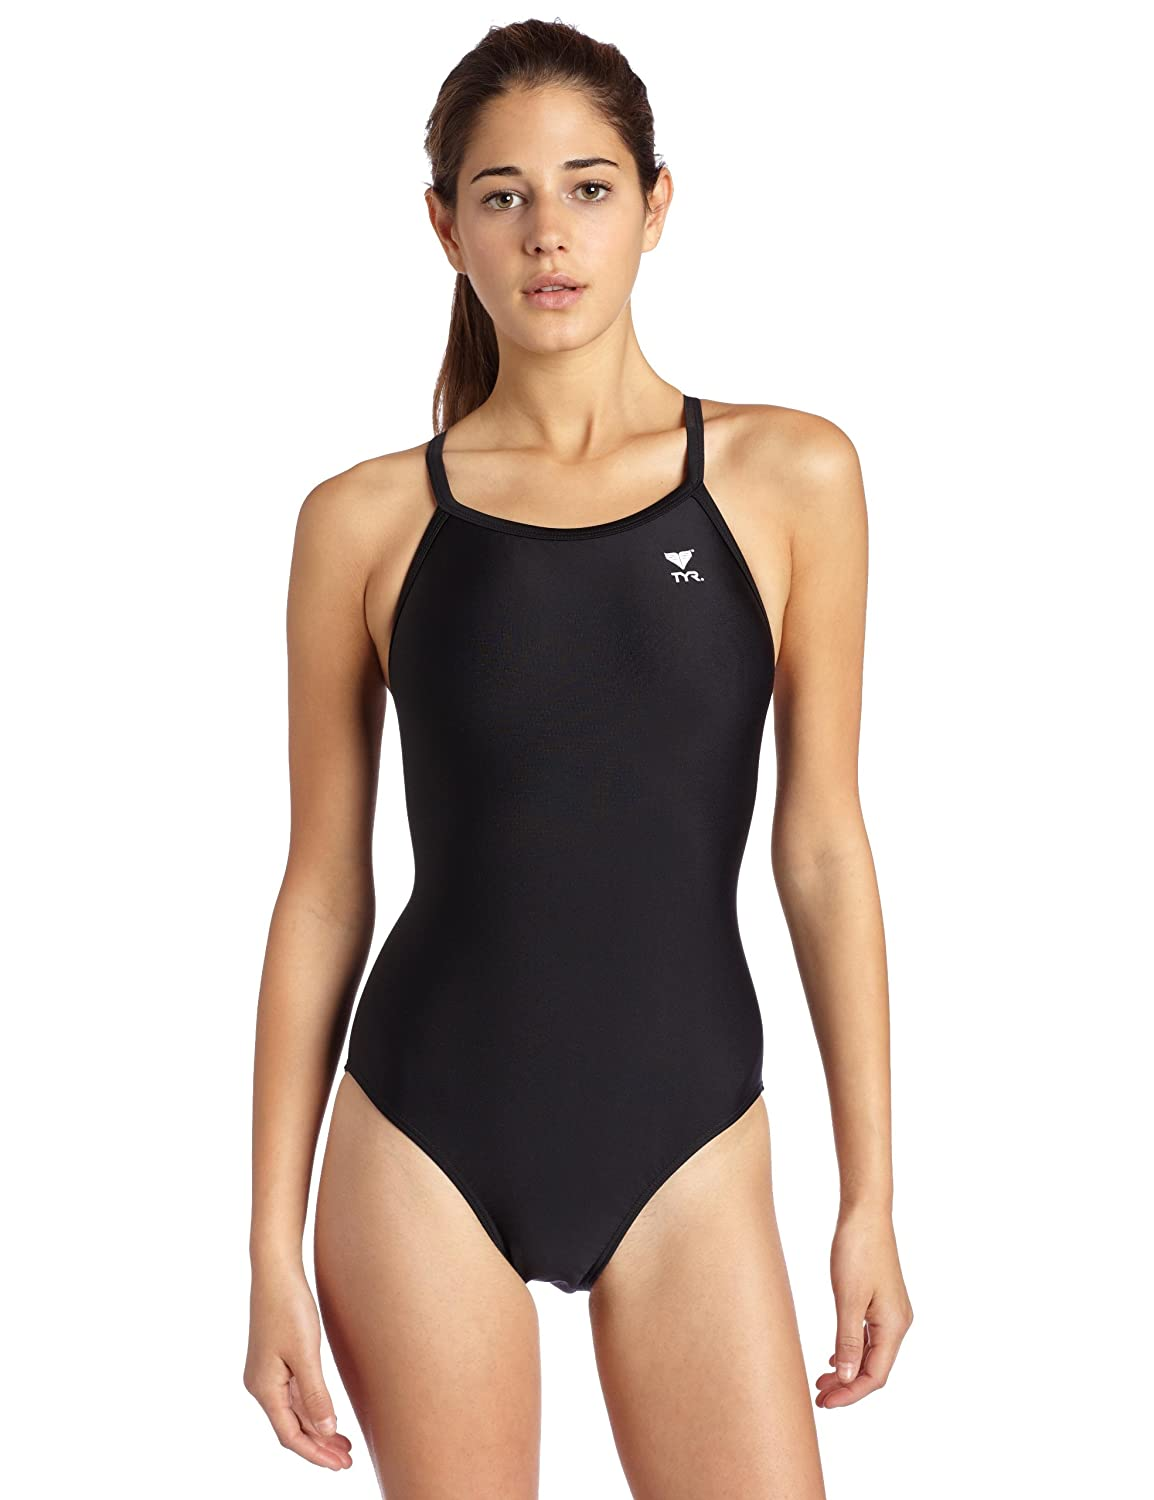 178d685e Amazon.com : TYR Sport Women's Solid Diamondback Swimsuit : Athletic One Piece  Swimsuits : Clothing